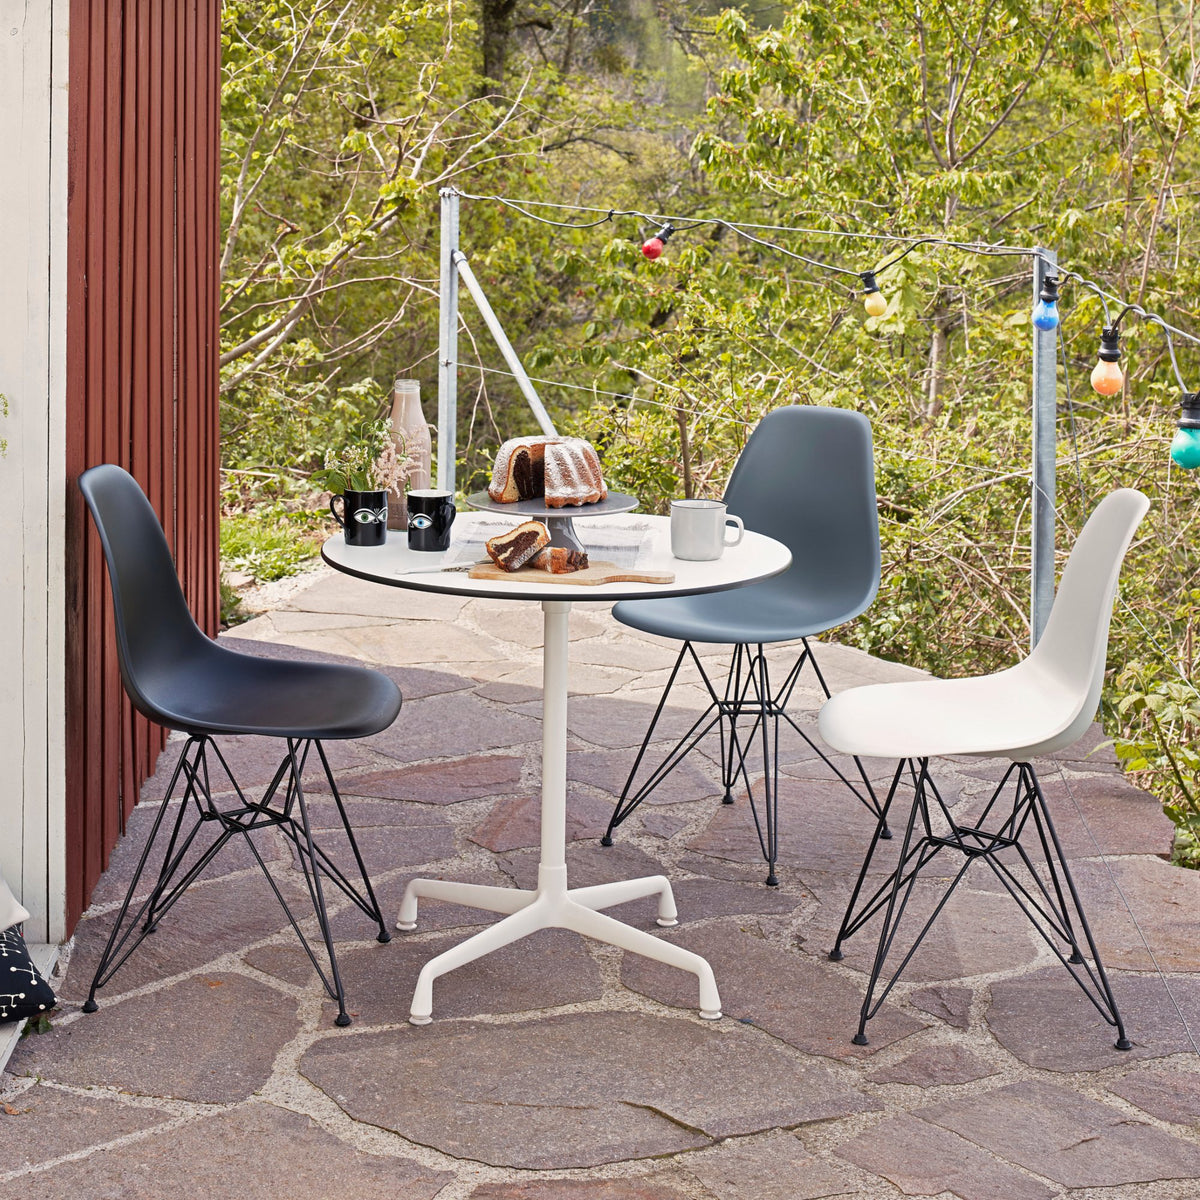 Vitra Eames Plastic Side Chair DSR Powder Coated for Outdoor Use. Courtyard Chair Setting